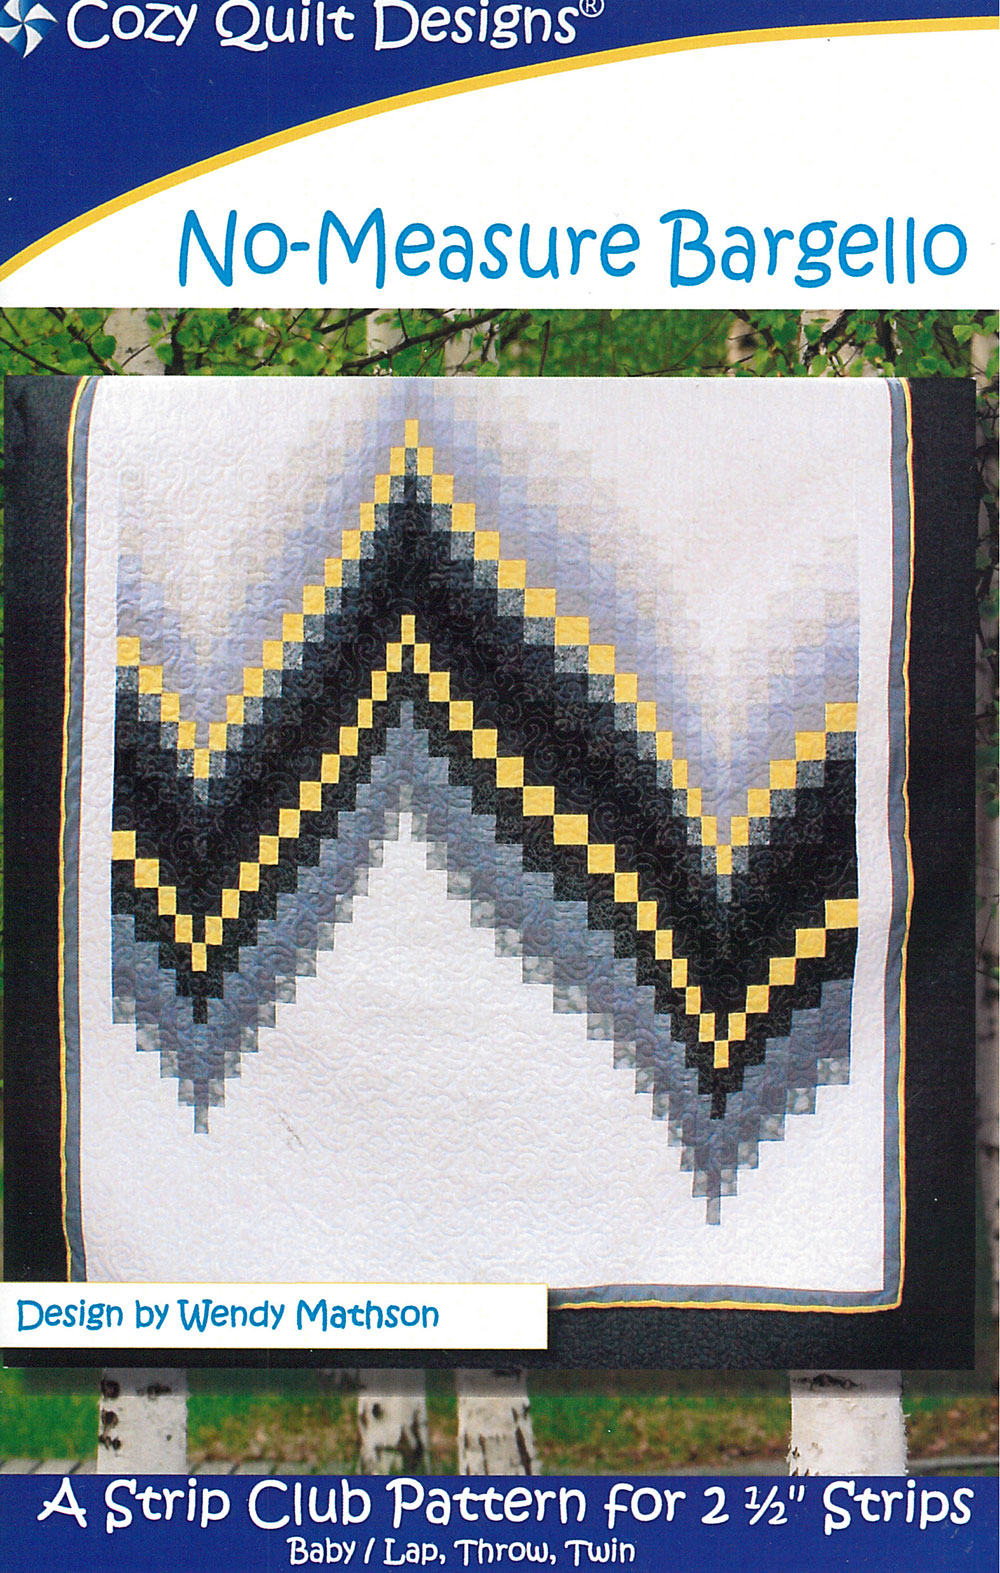 No-Measure Bargello by Cozy Quilt Designs